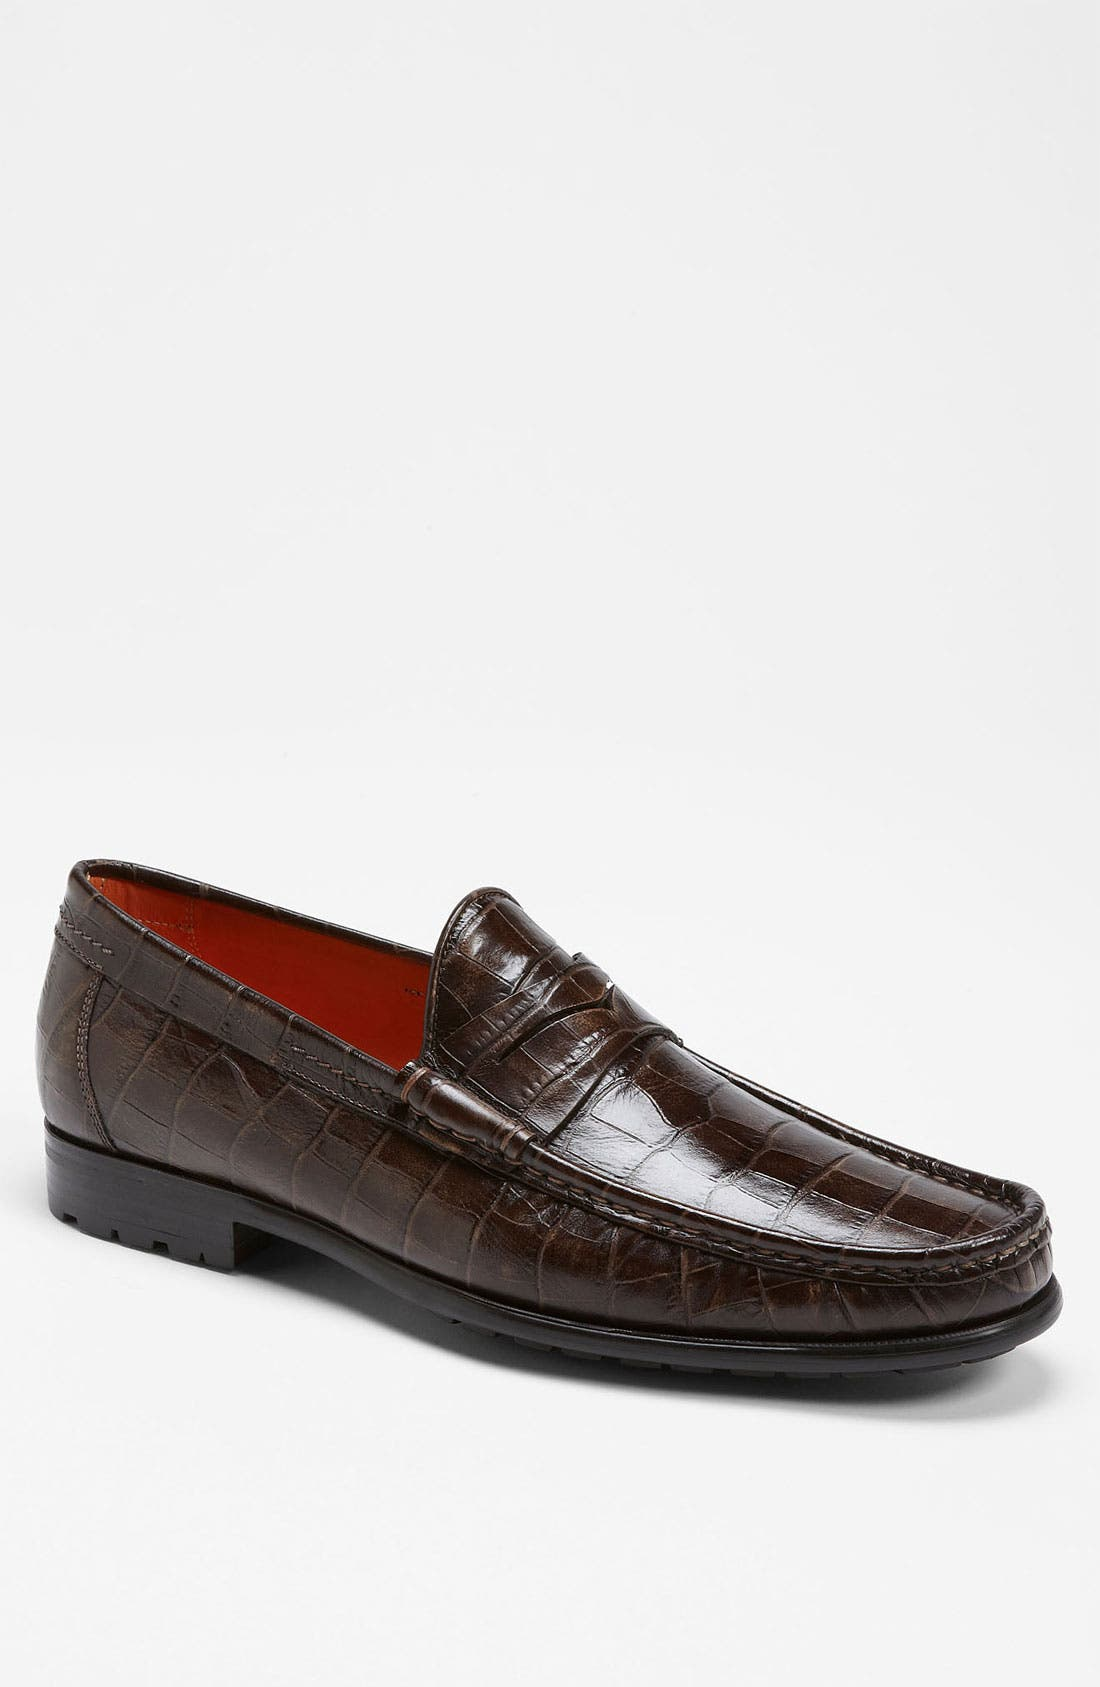 Main Image - Santoni 'Quint' Penny Loafer